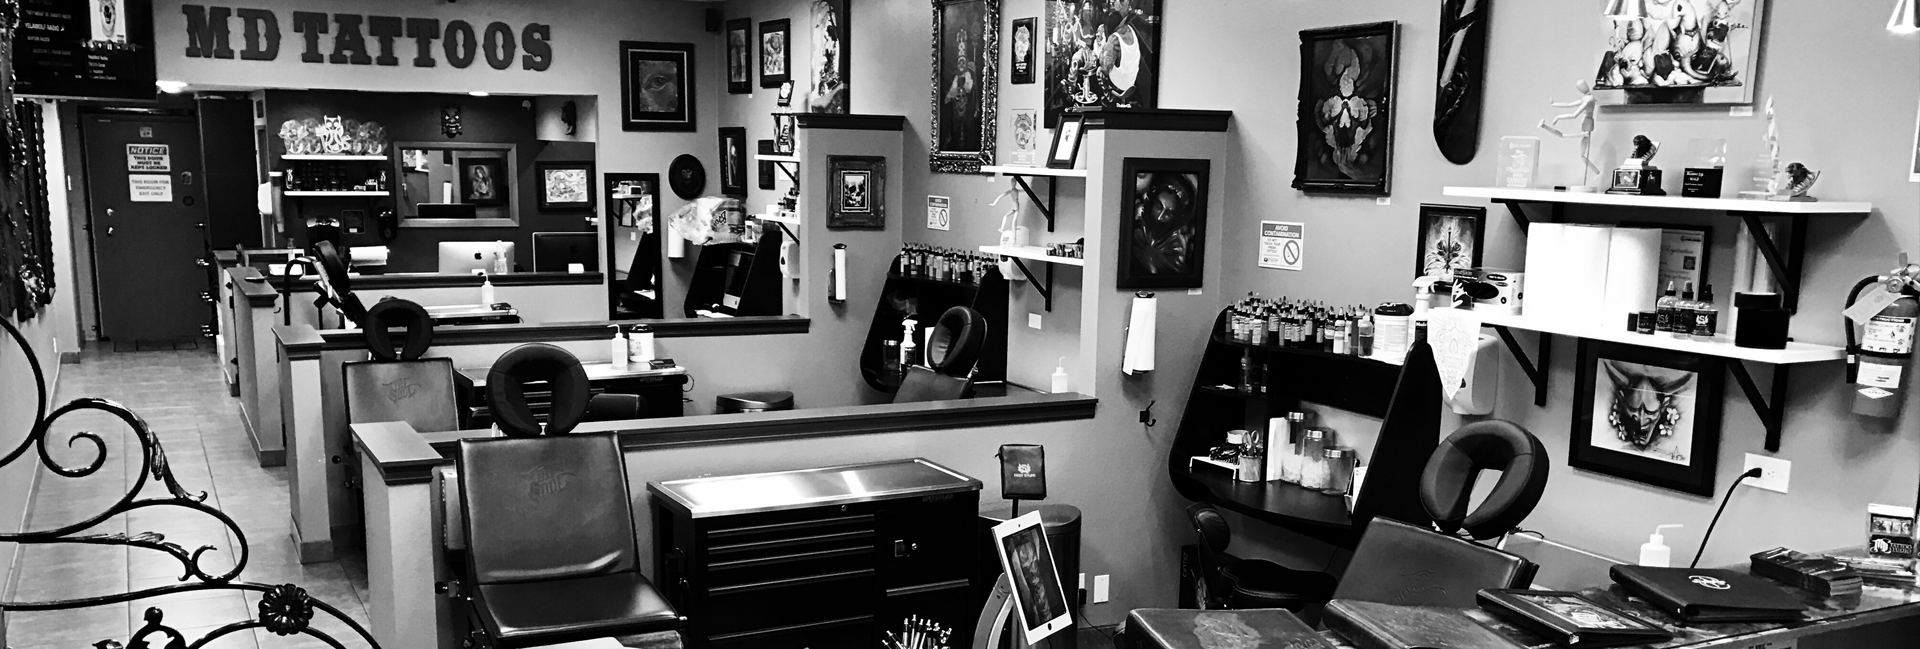 MD TATTOO STUDIO: NORTHRIDGE CA